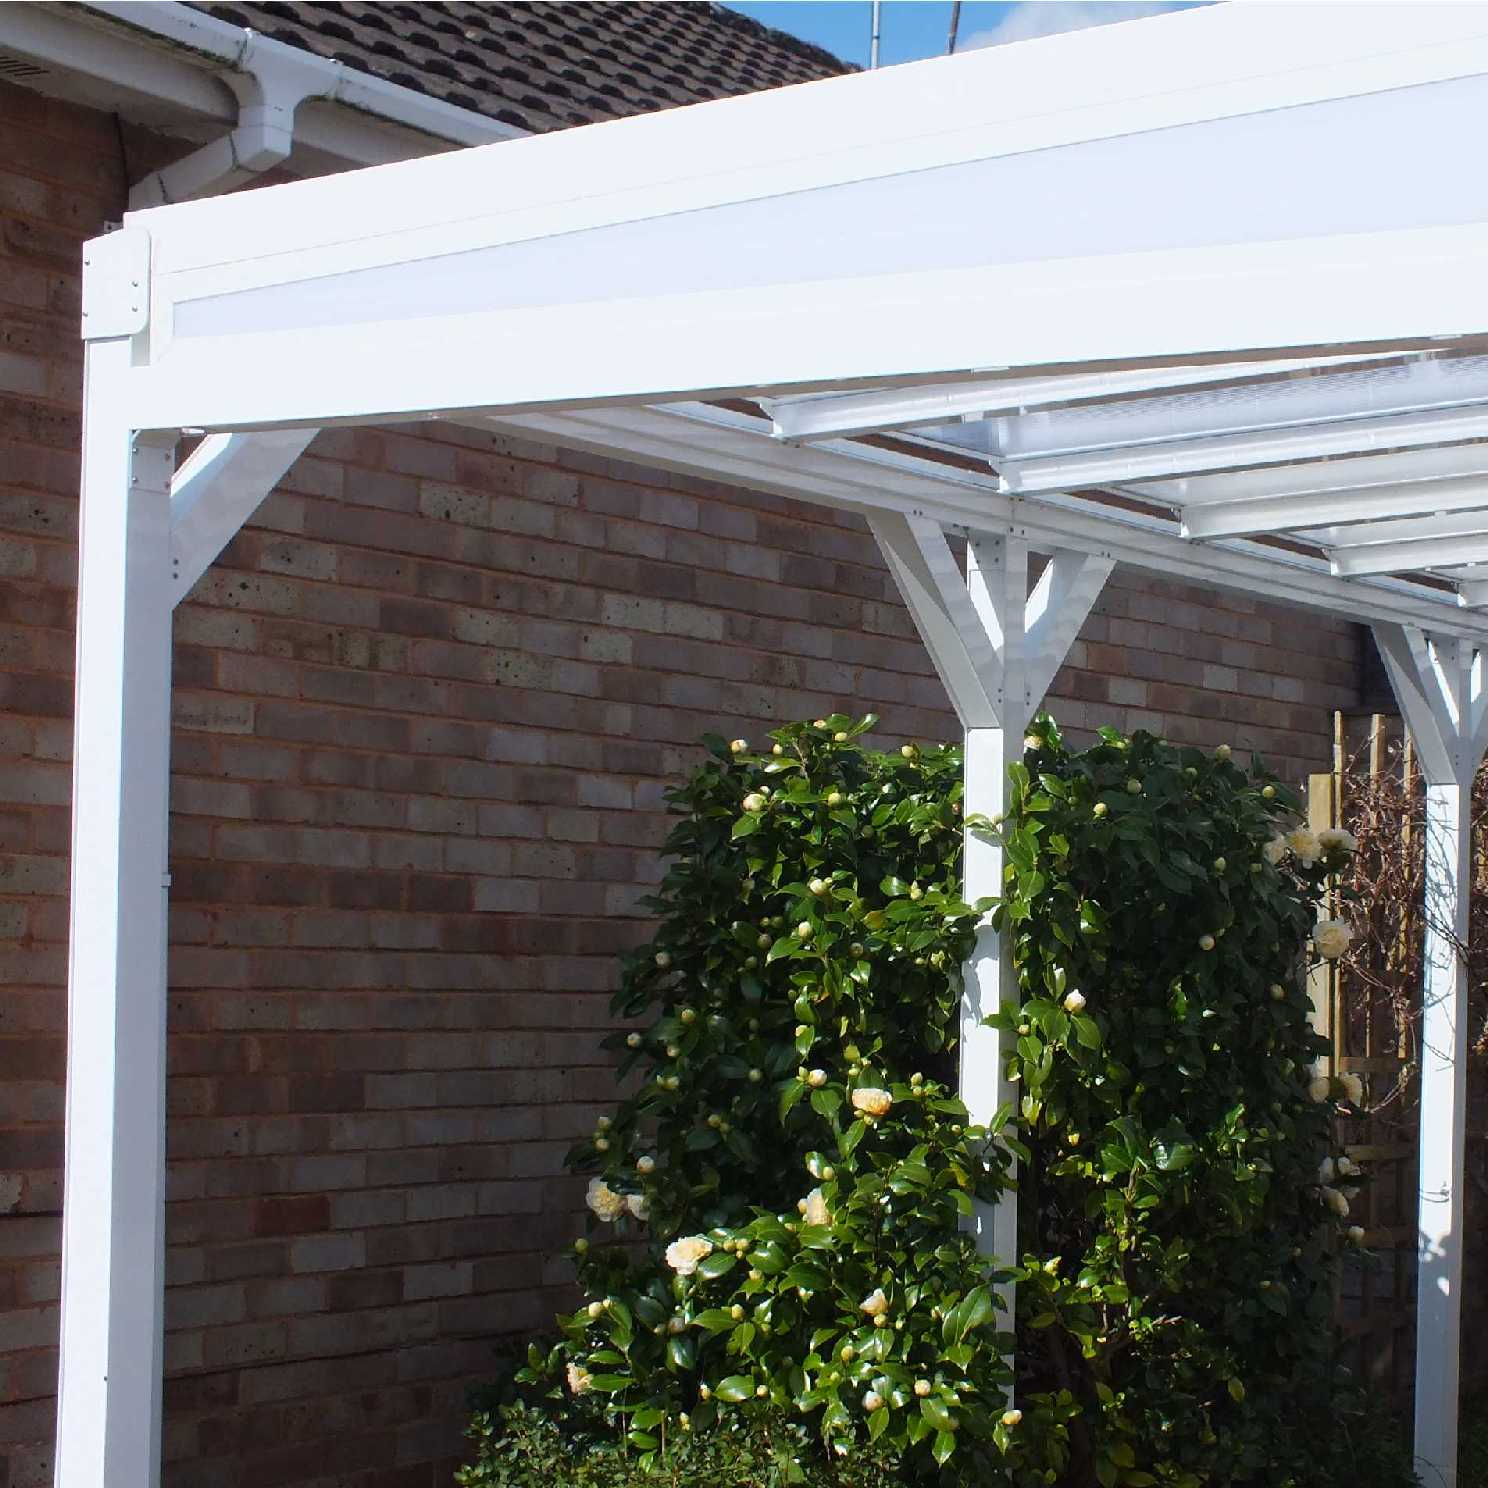 Omega Smart White Lean-To Canopy with 16mm Polycarbonate Glazing - 10.6m (W) x 3.5m (P), (5) Supporting Posts from Omega Build